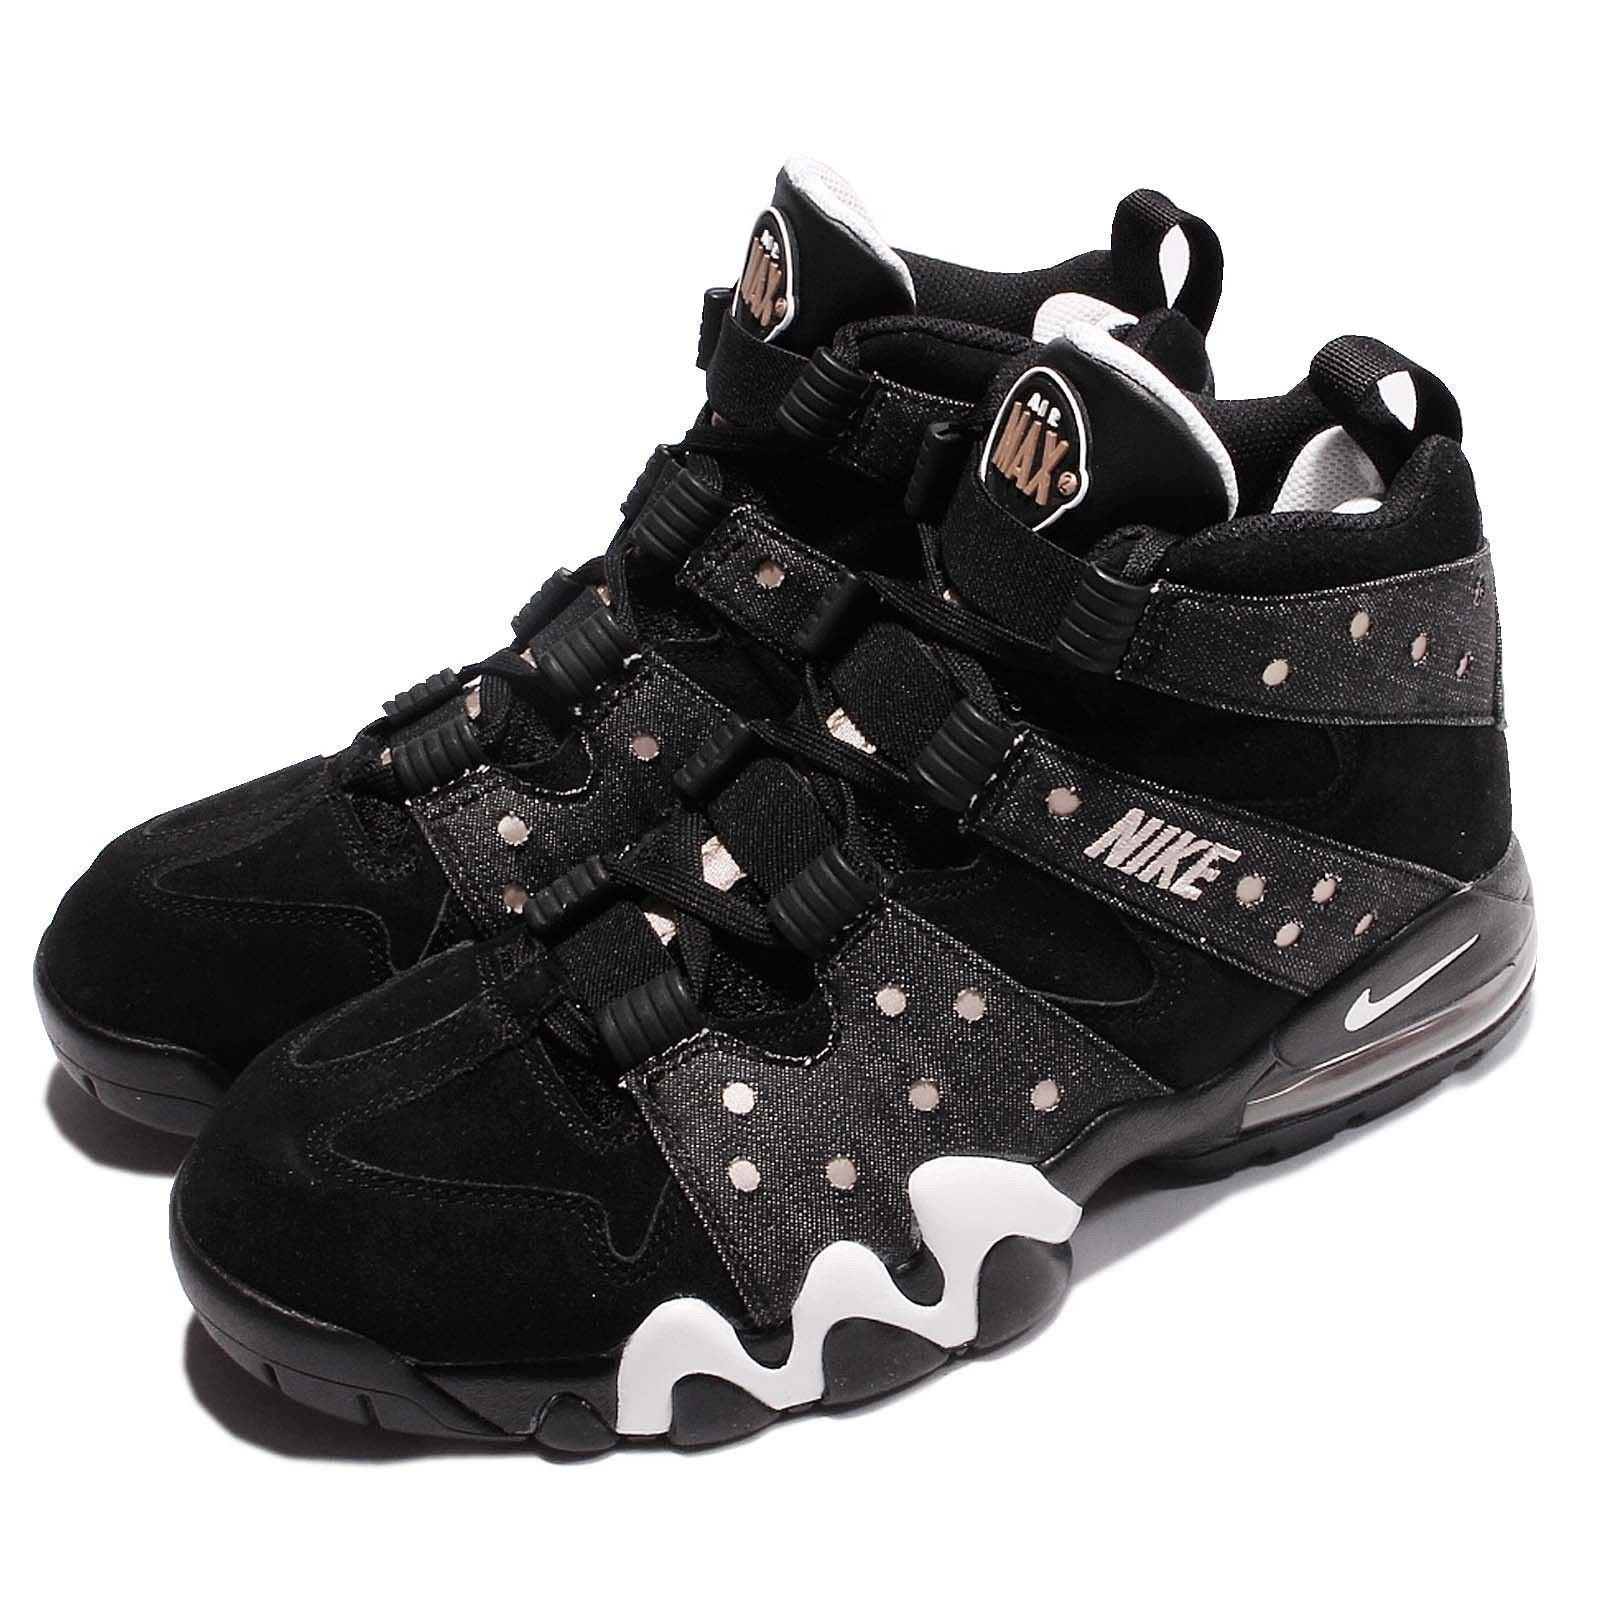 Nike Air Max 2 CB 94 Charles Barkley Black Bronze Mens Shoes 305440-004